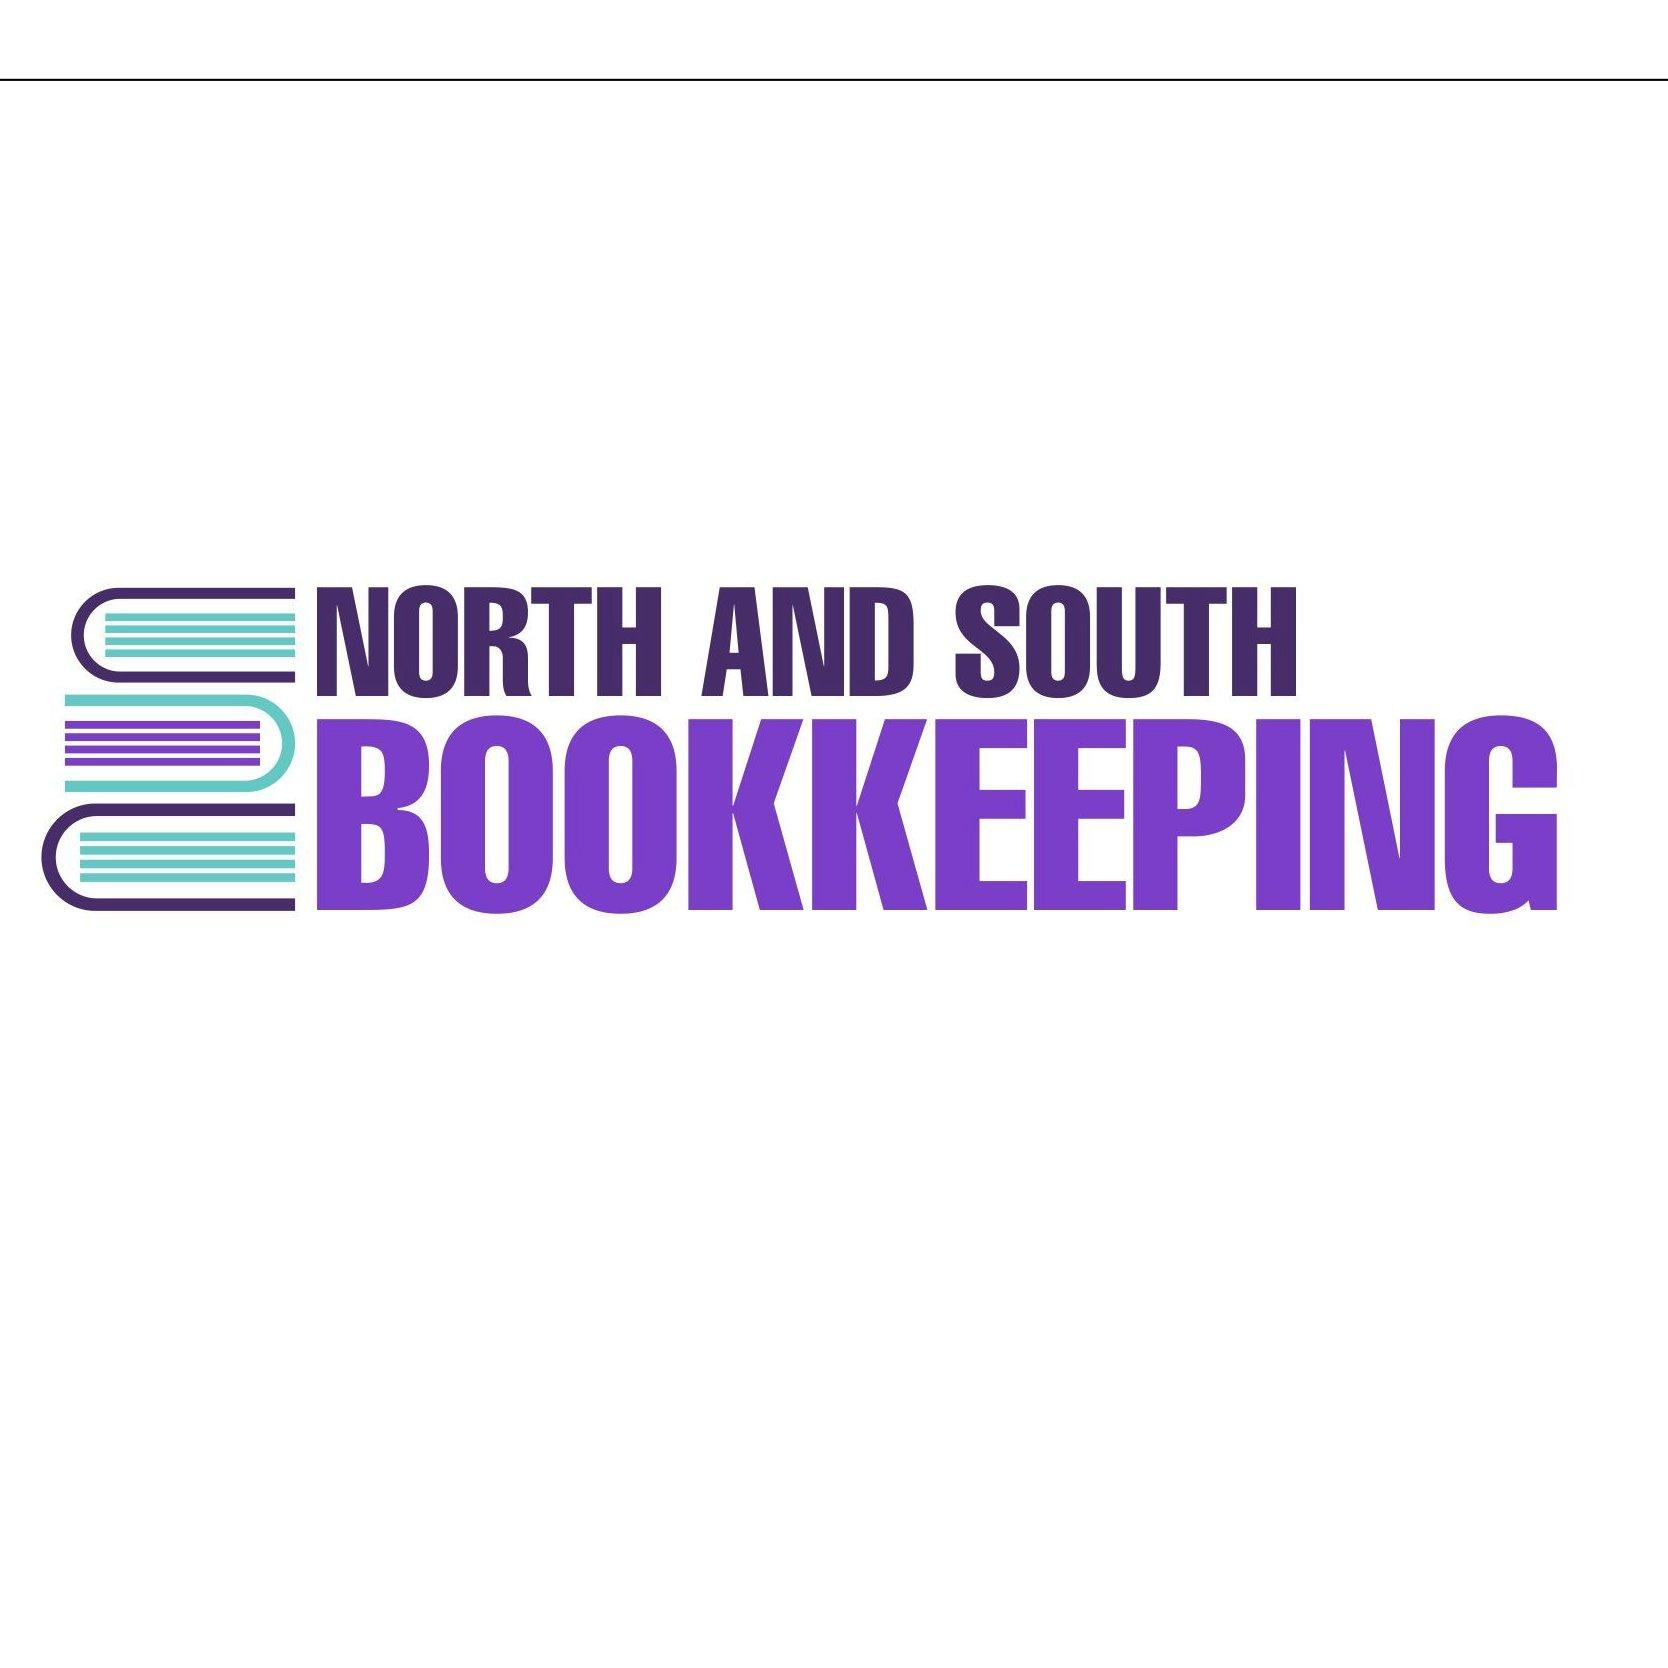 North and South Bookkeeping